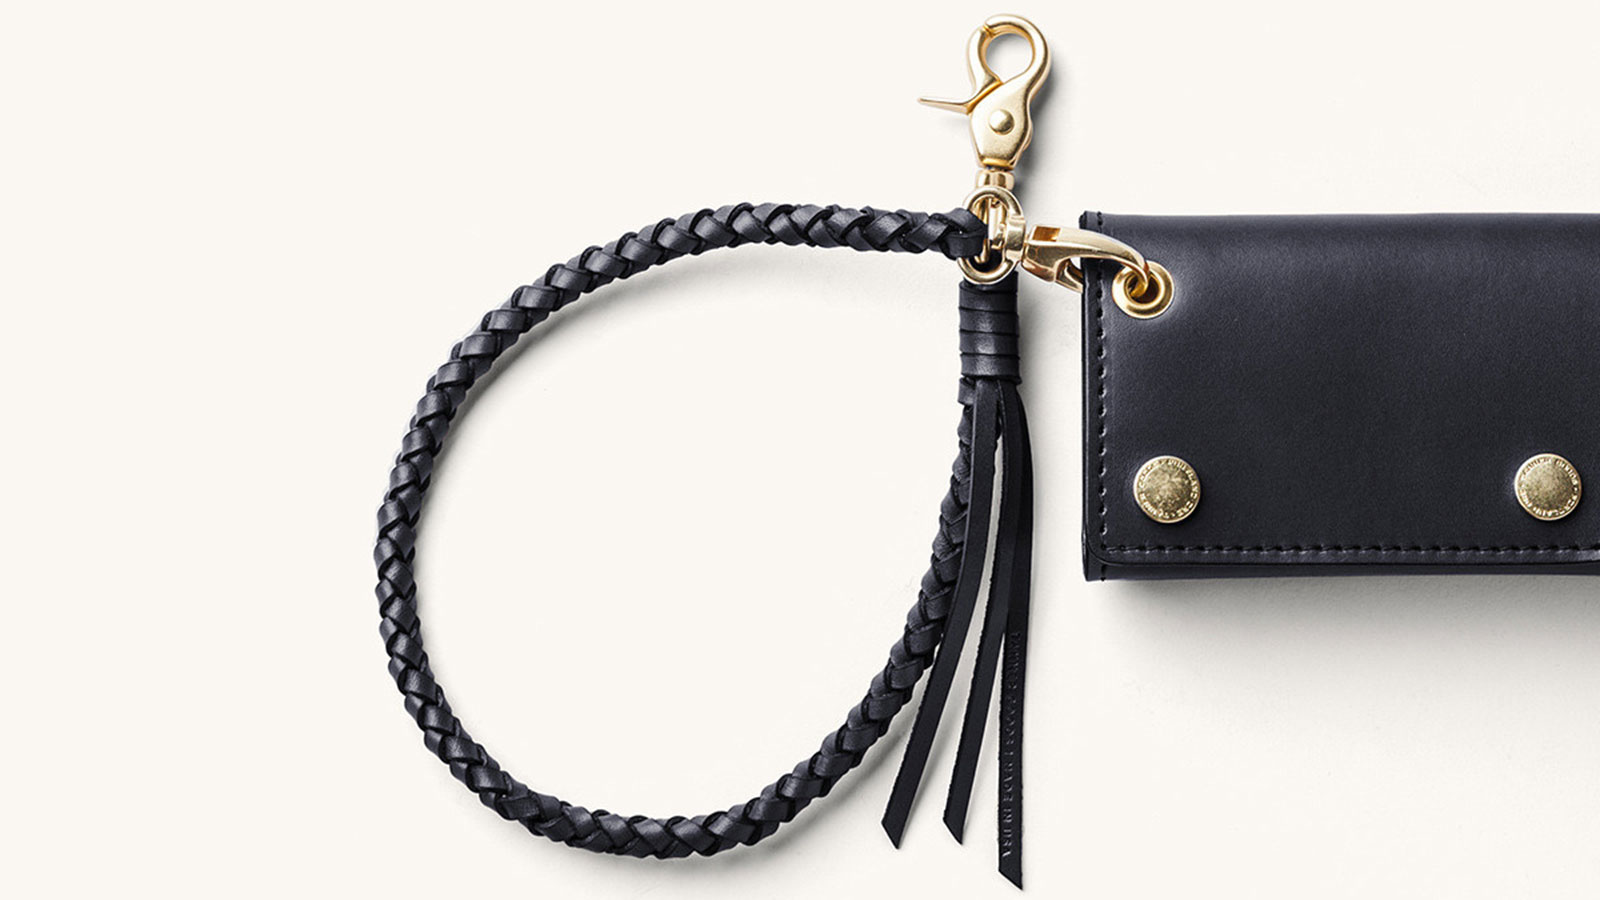 TANNER GOODS BRAIDED TETHER